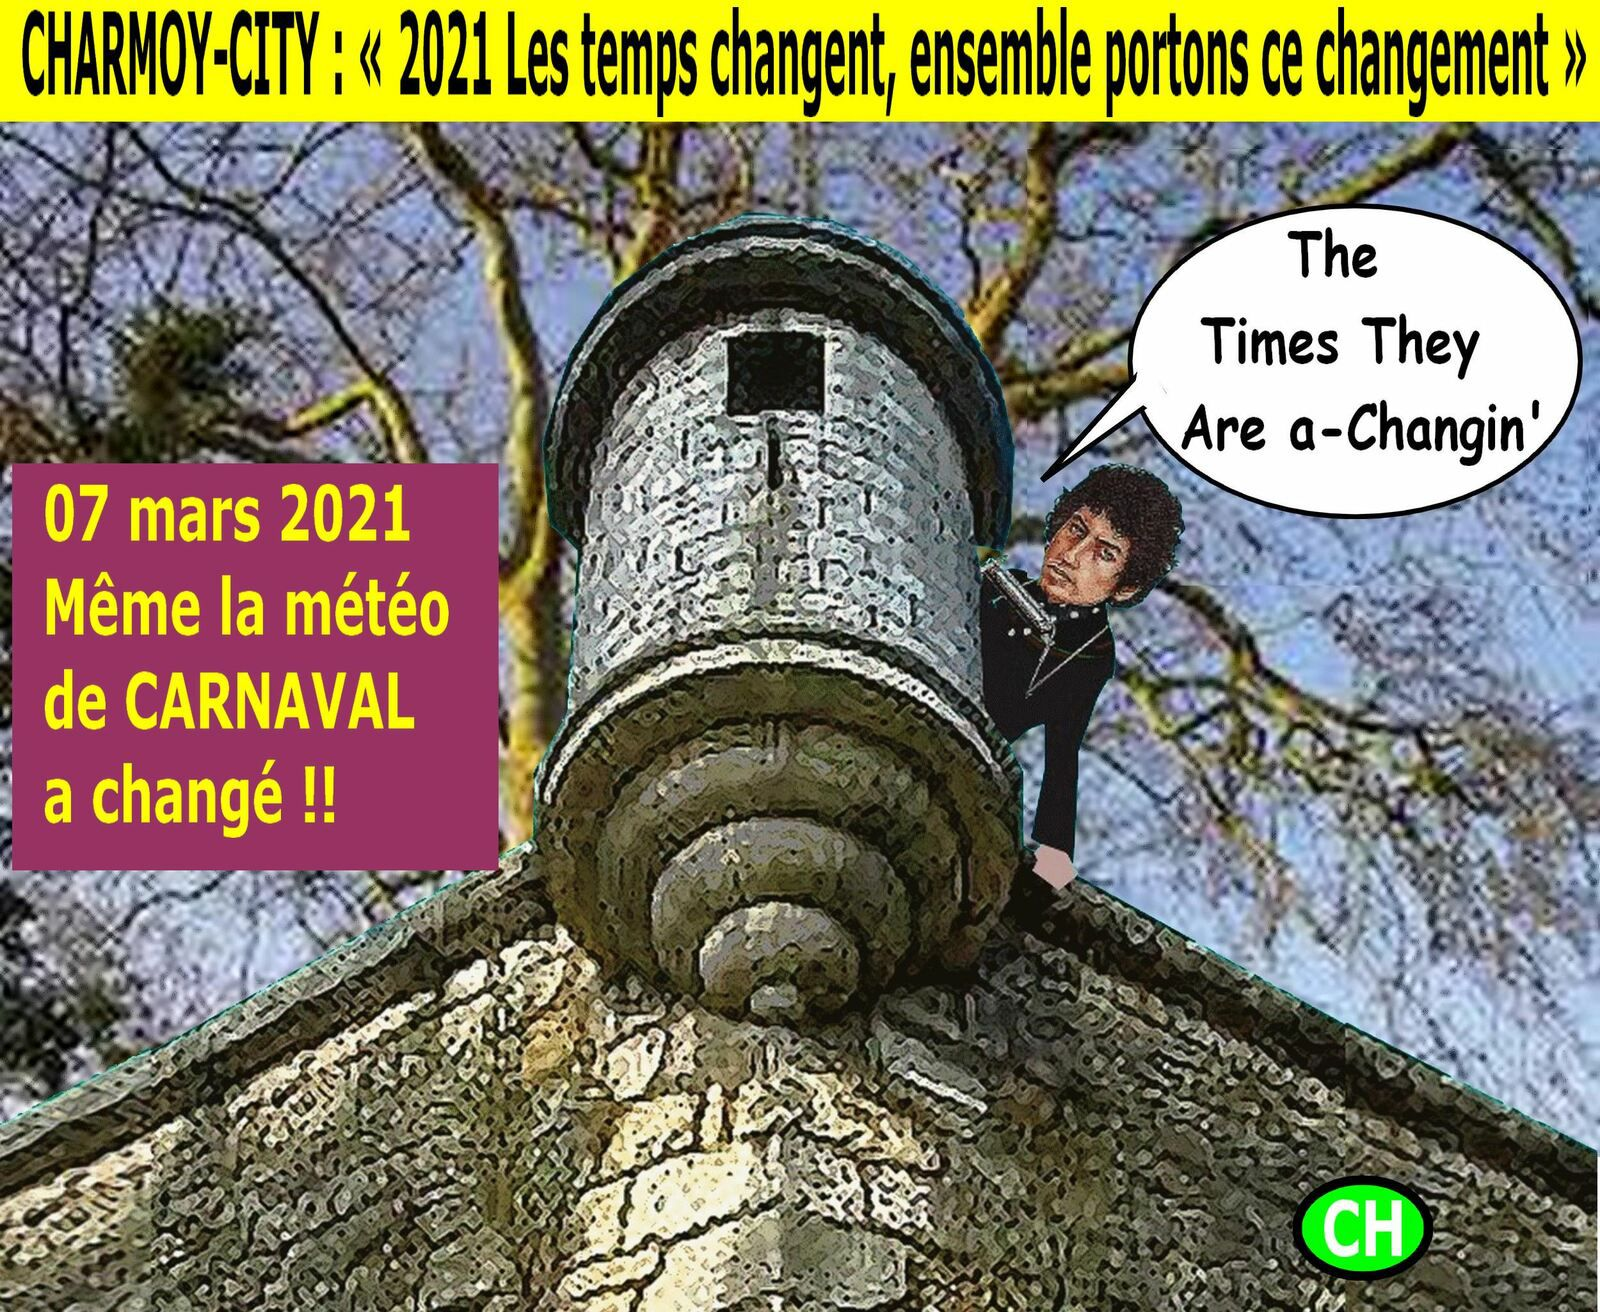 Charmoy-city, 2021, les temps changent.jpg